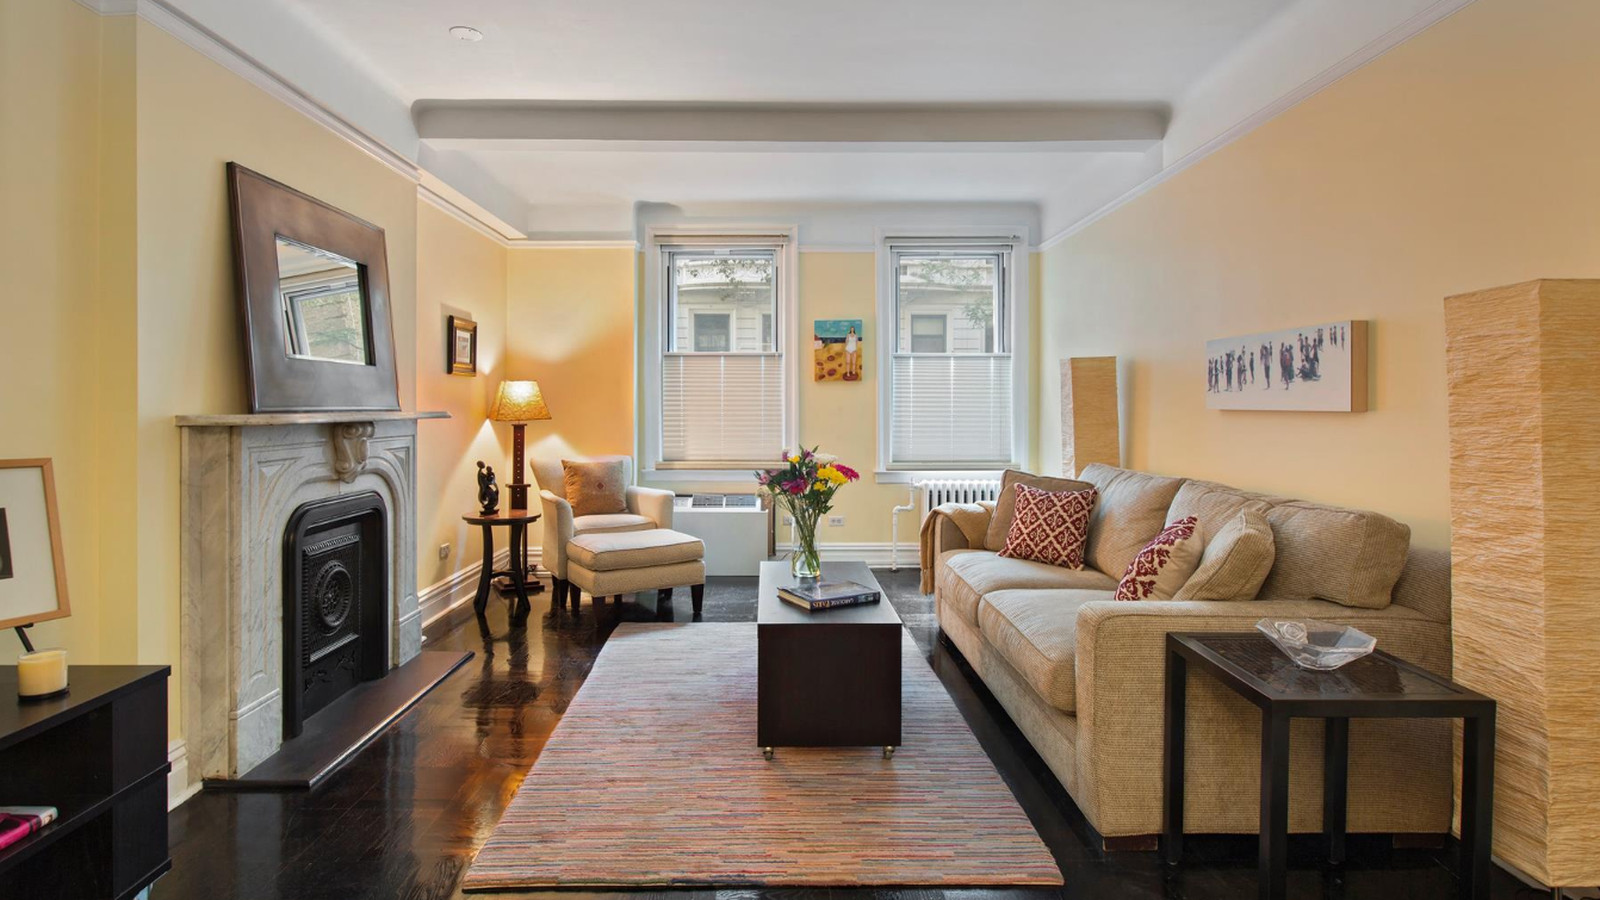 Big Reveal 865k For A Classic Upper West Side One